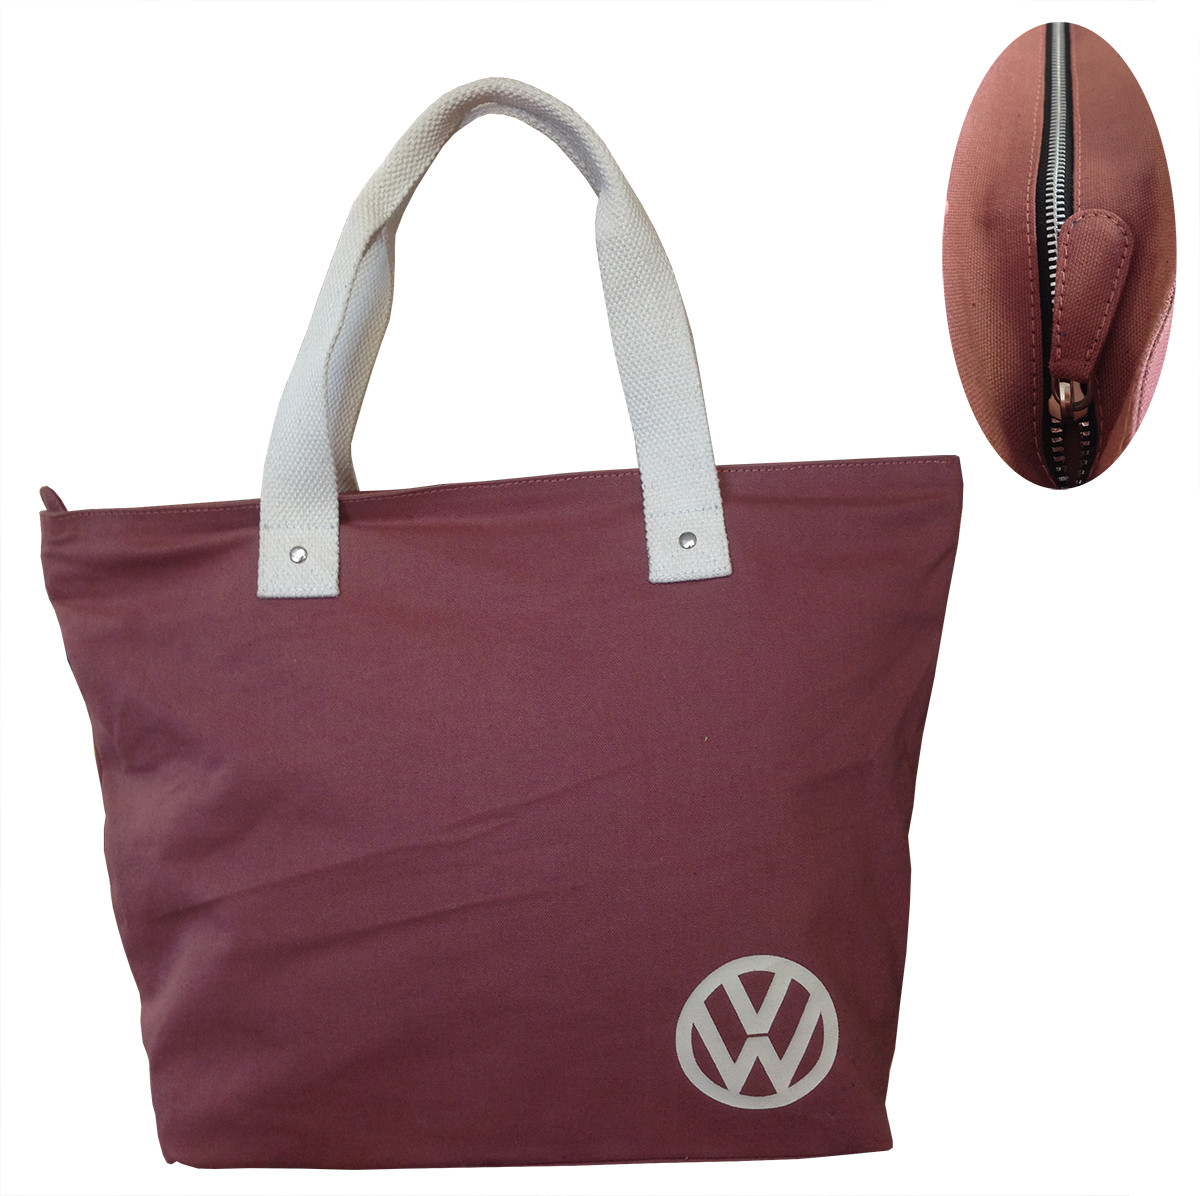 a4a40af3eaa0b Official VW Canvas Ladies Shopping Tote Bag - Red - Auto Regalia